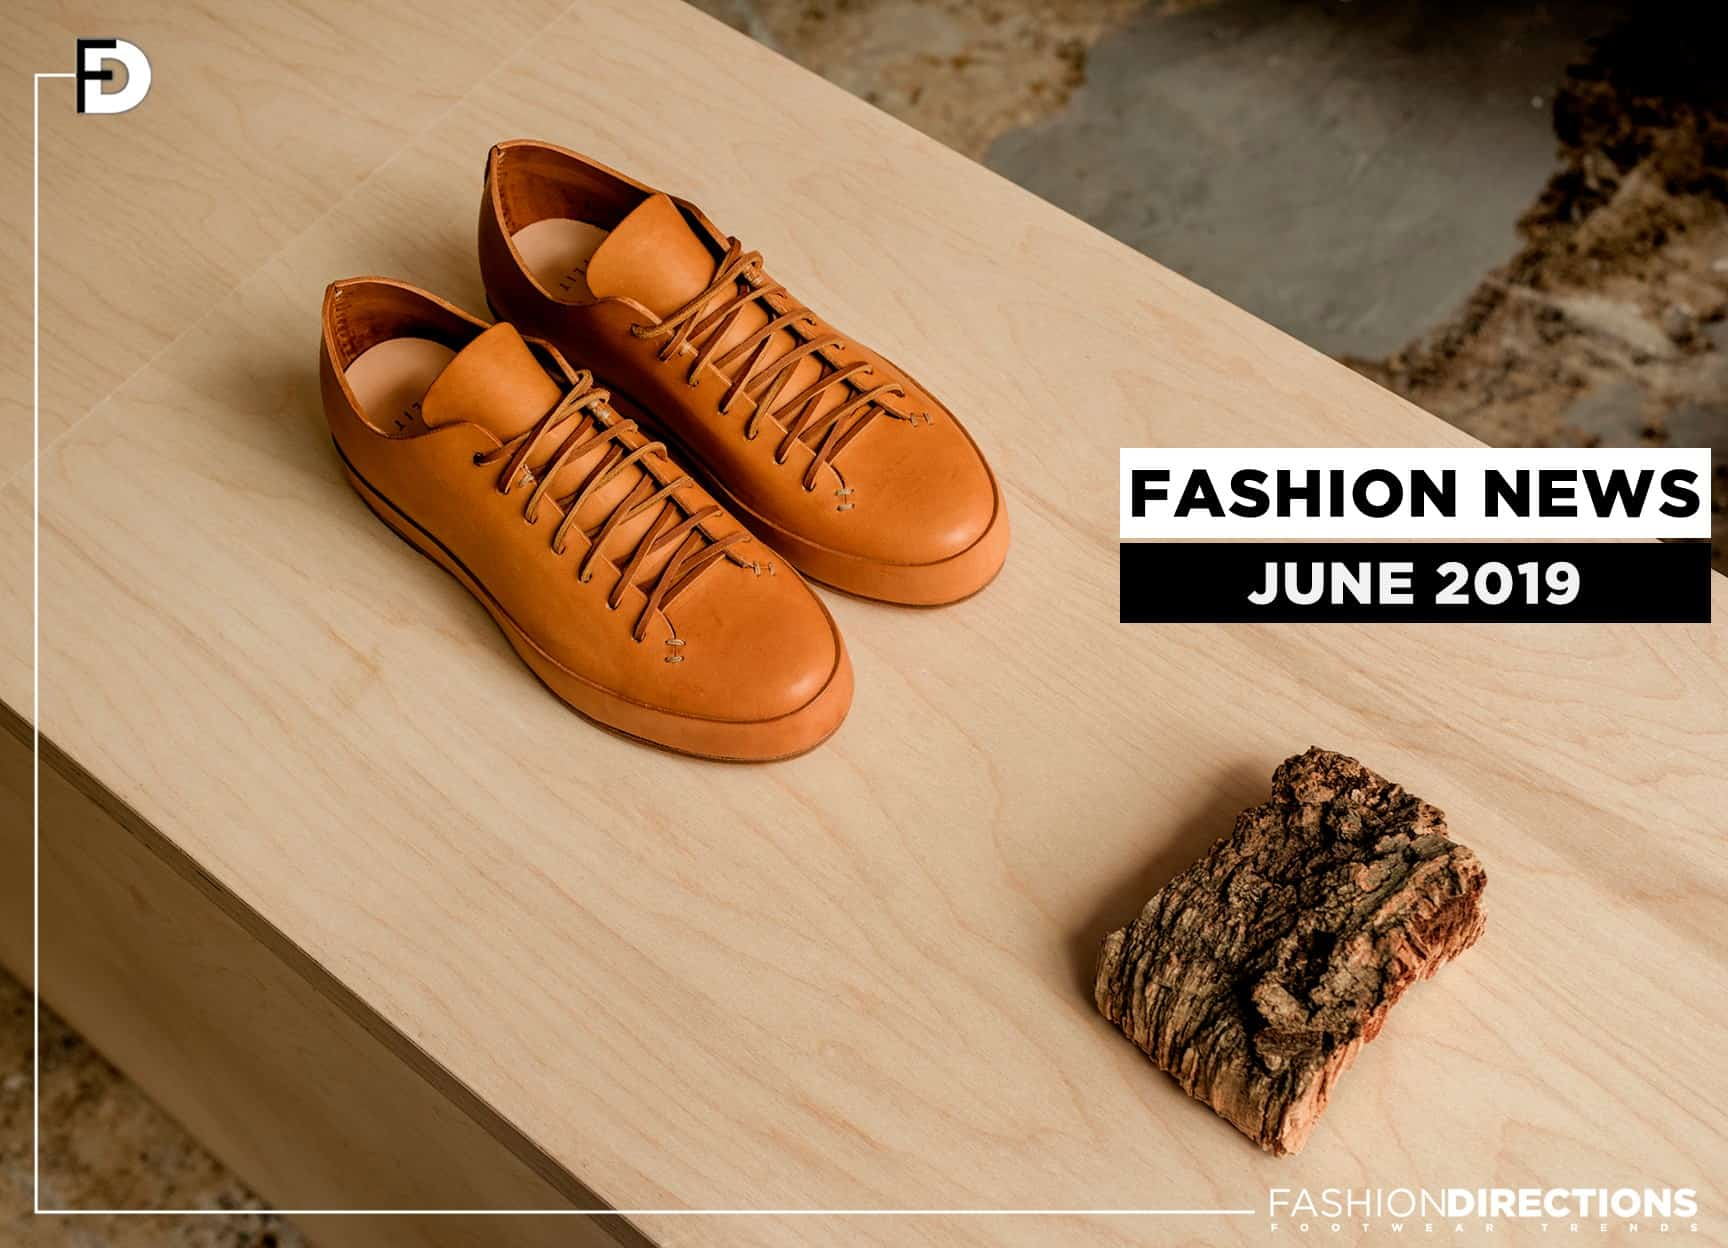 Fashion News June 19 1